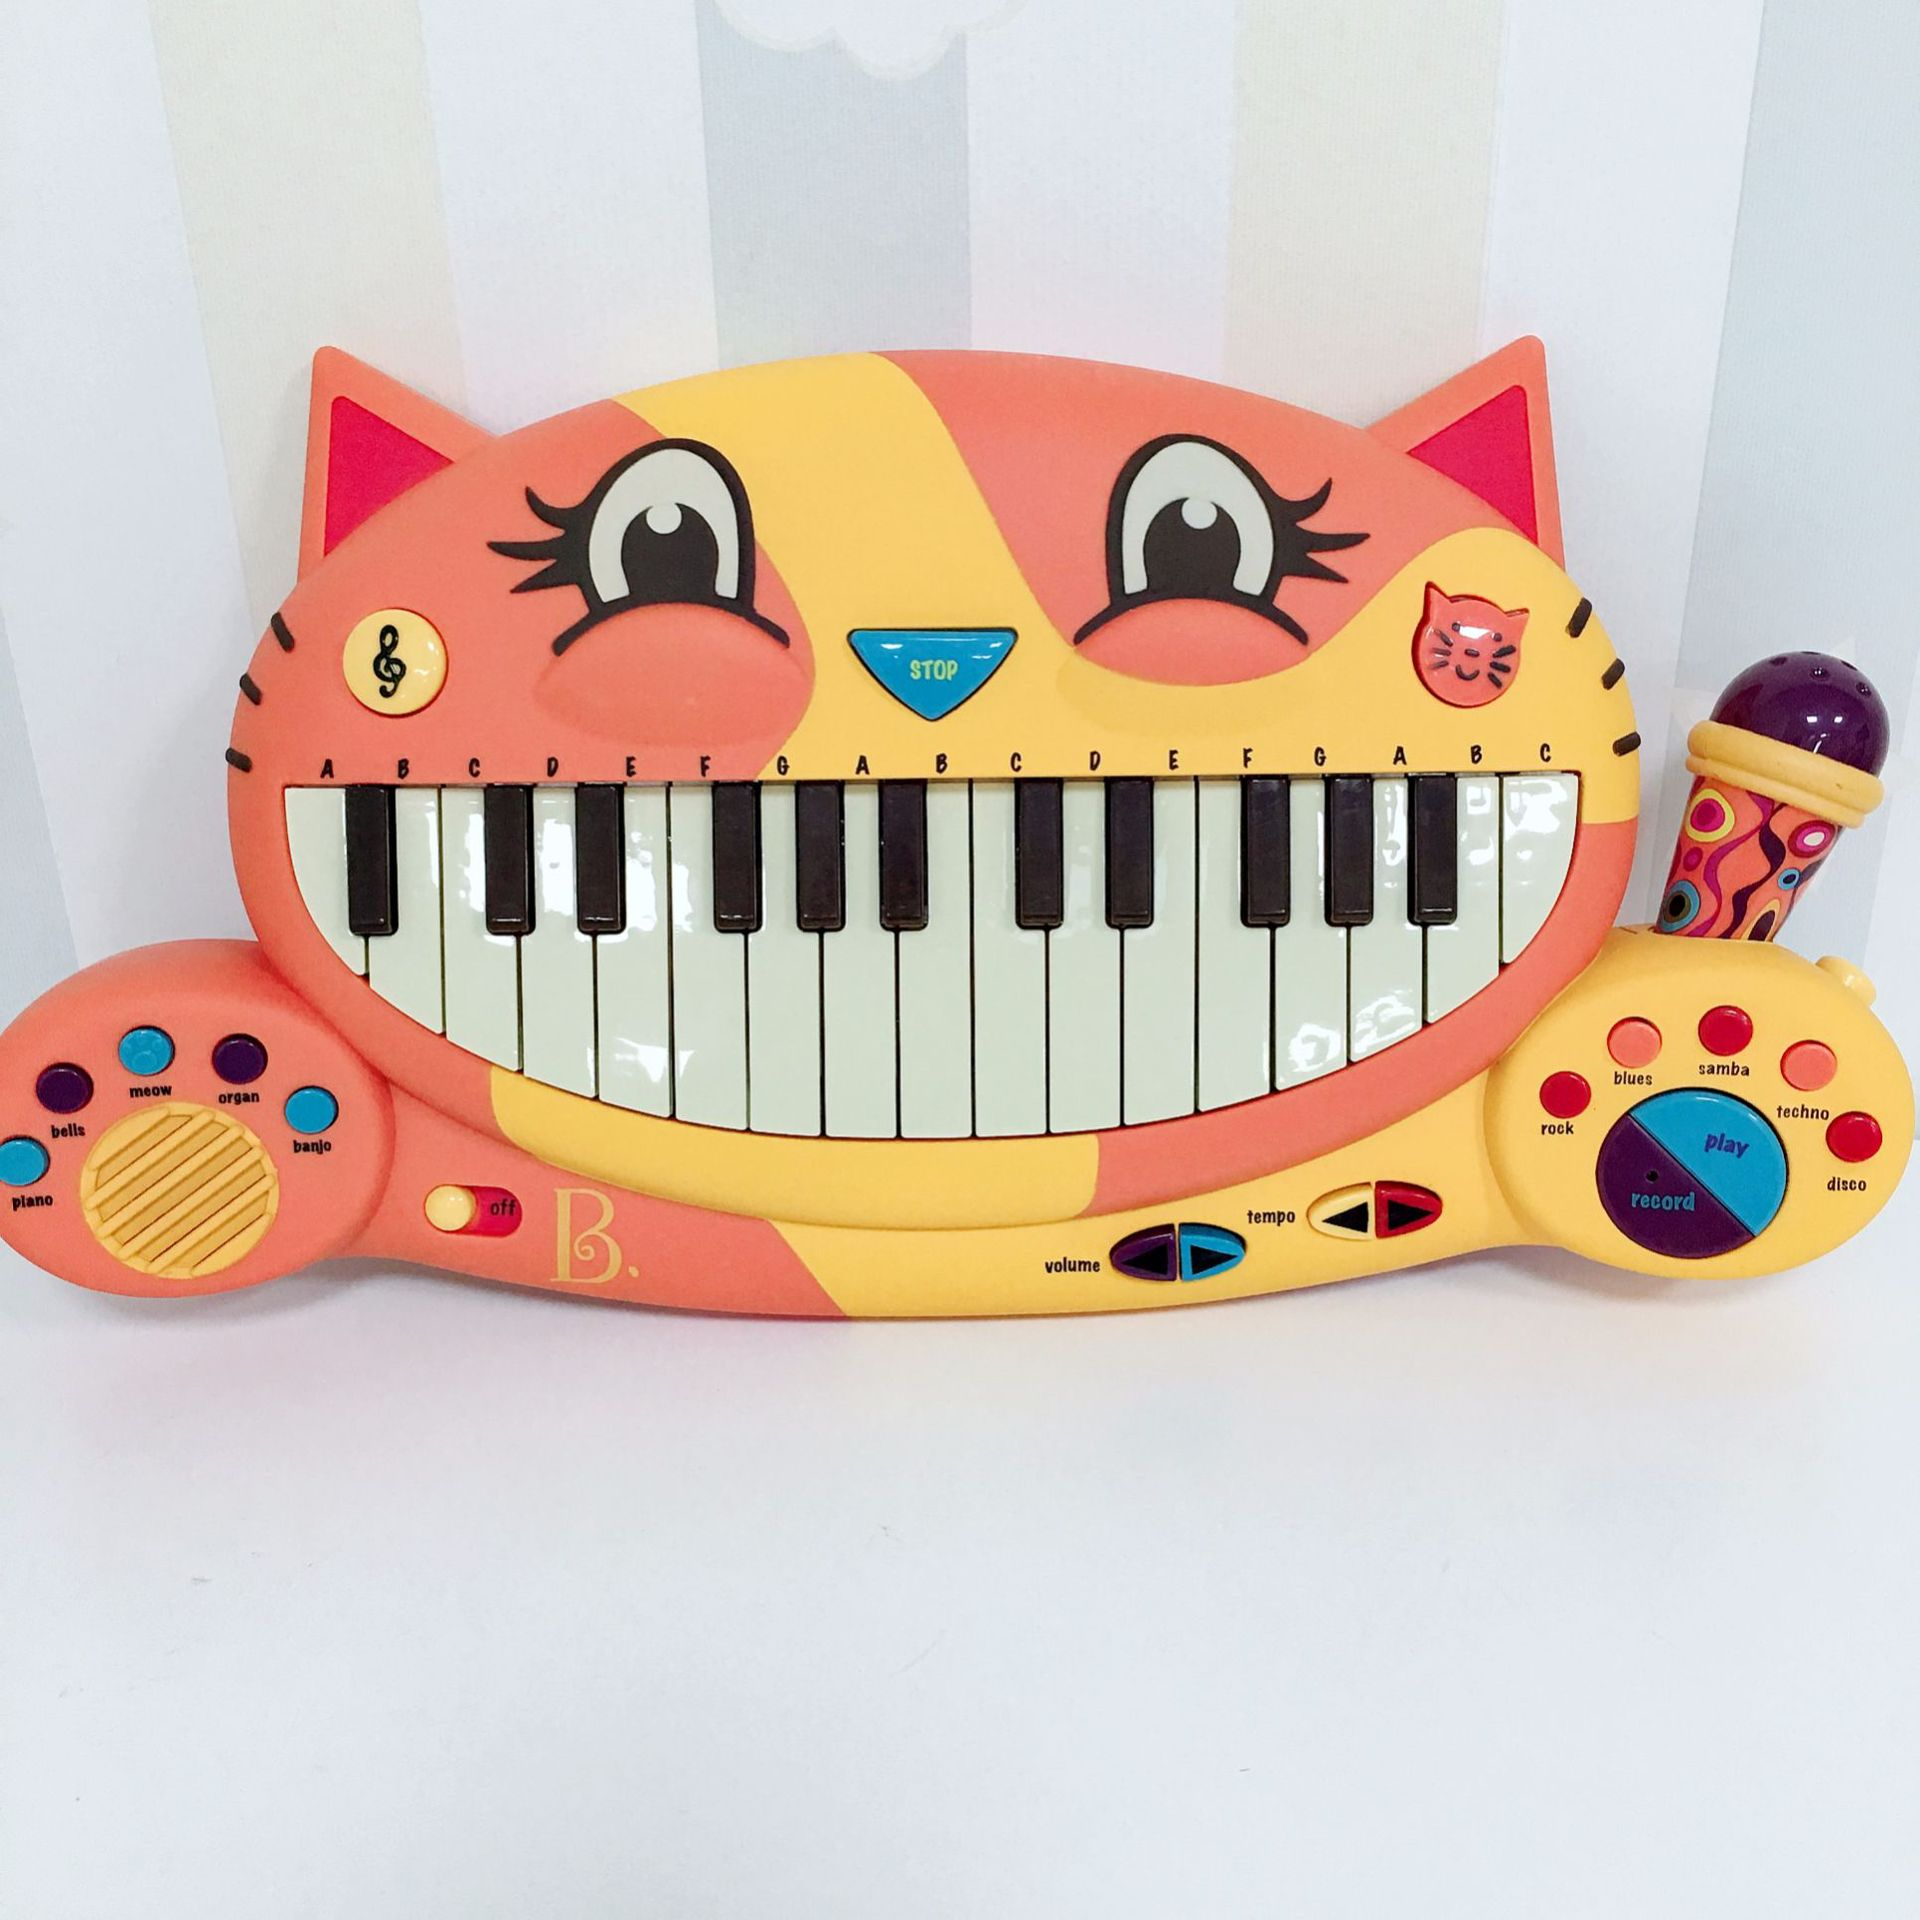 America B. Toys B. Mouthcat Piano Infants CHILDREN'S Cartoon Early Childhood Educational Electronic Piano Music Toy